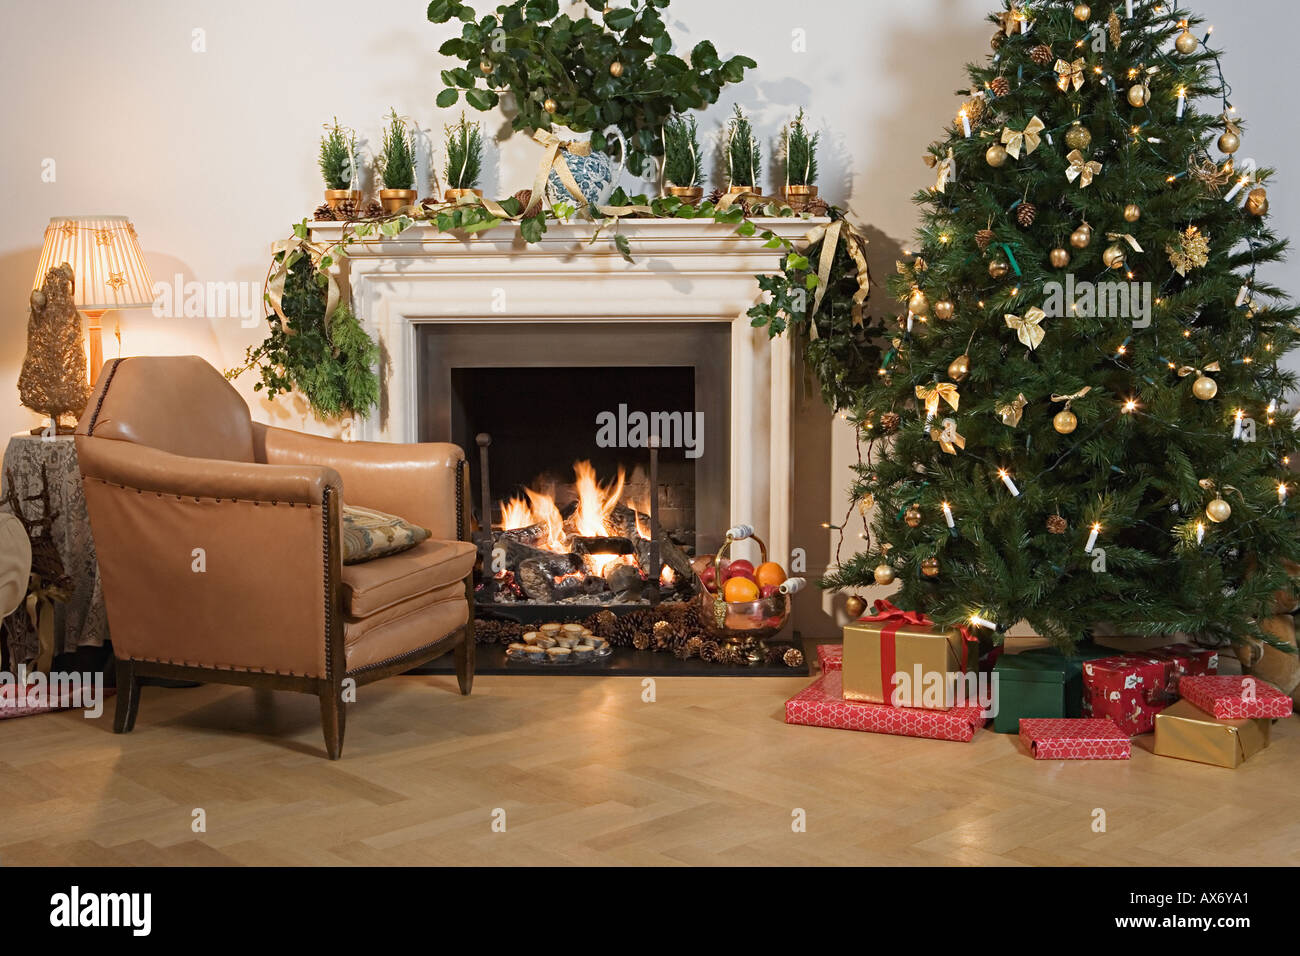 Festively decorated living room - Stock Image